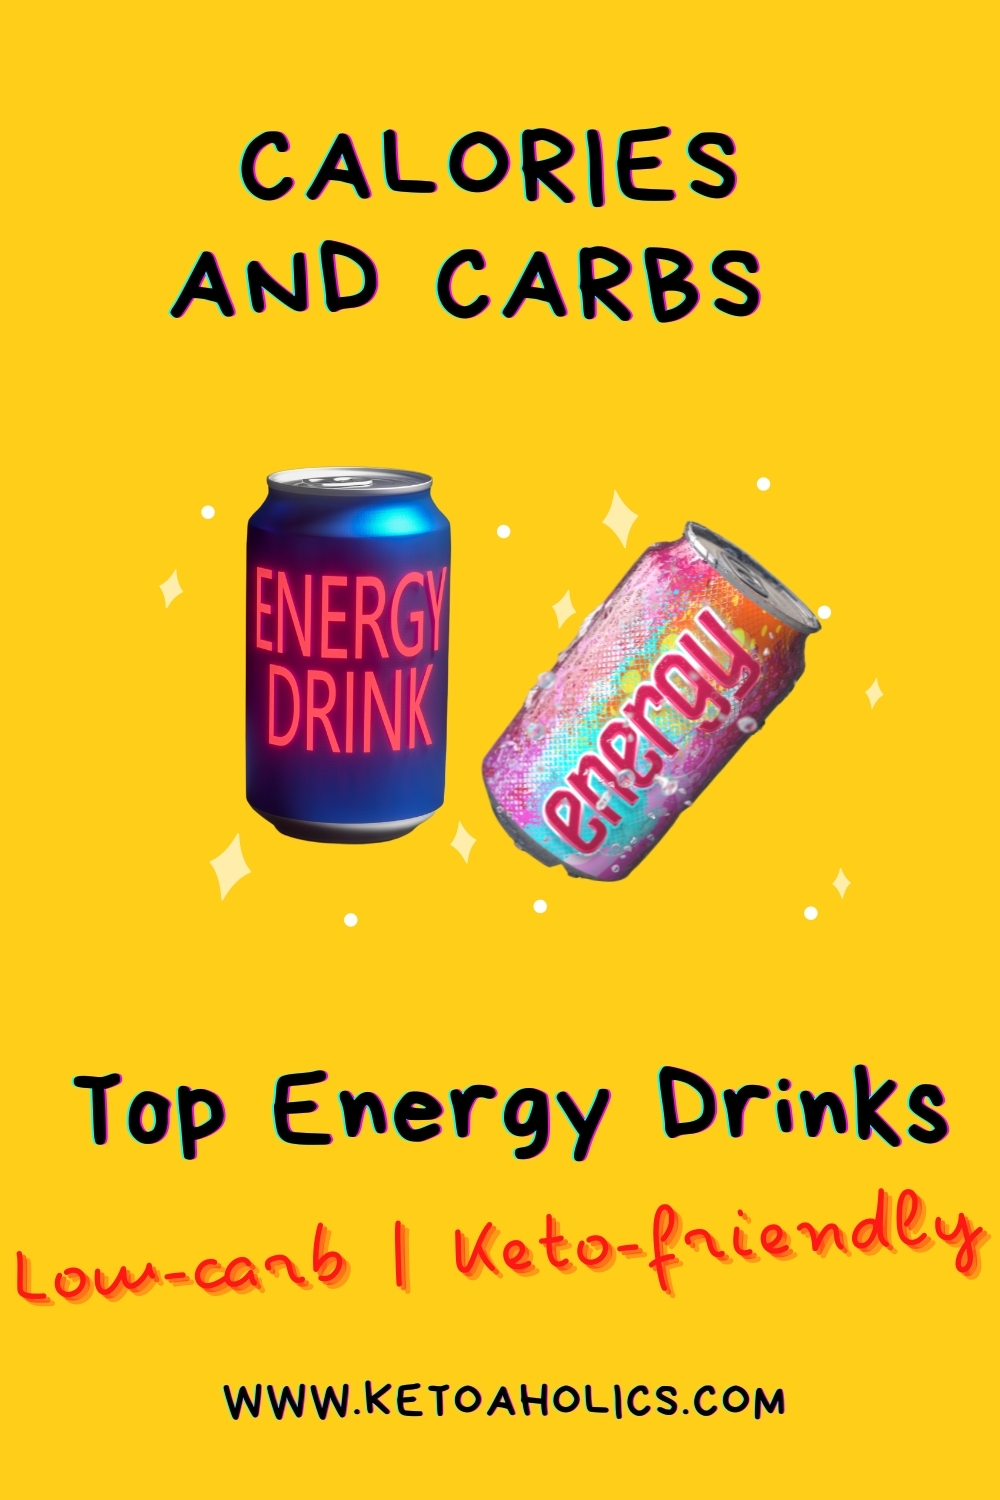 image of Top Energy Drinks Low Carb Keto Friendly